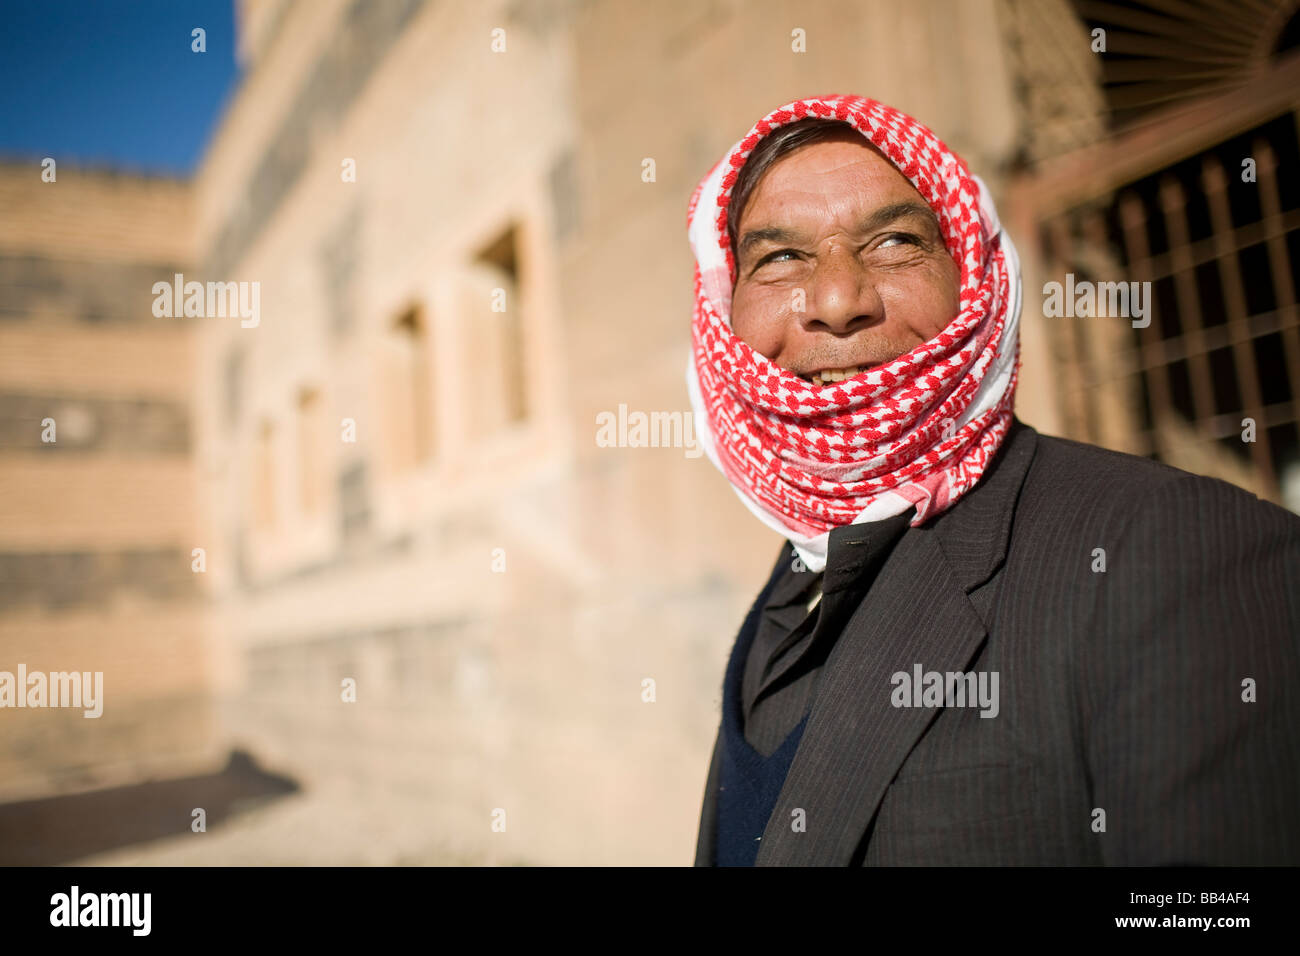 Portrait of a Syrian man smiling in Qala'at ibn maan. - Stock Image